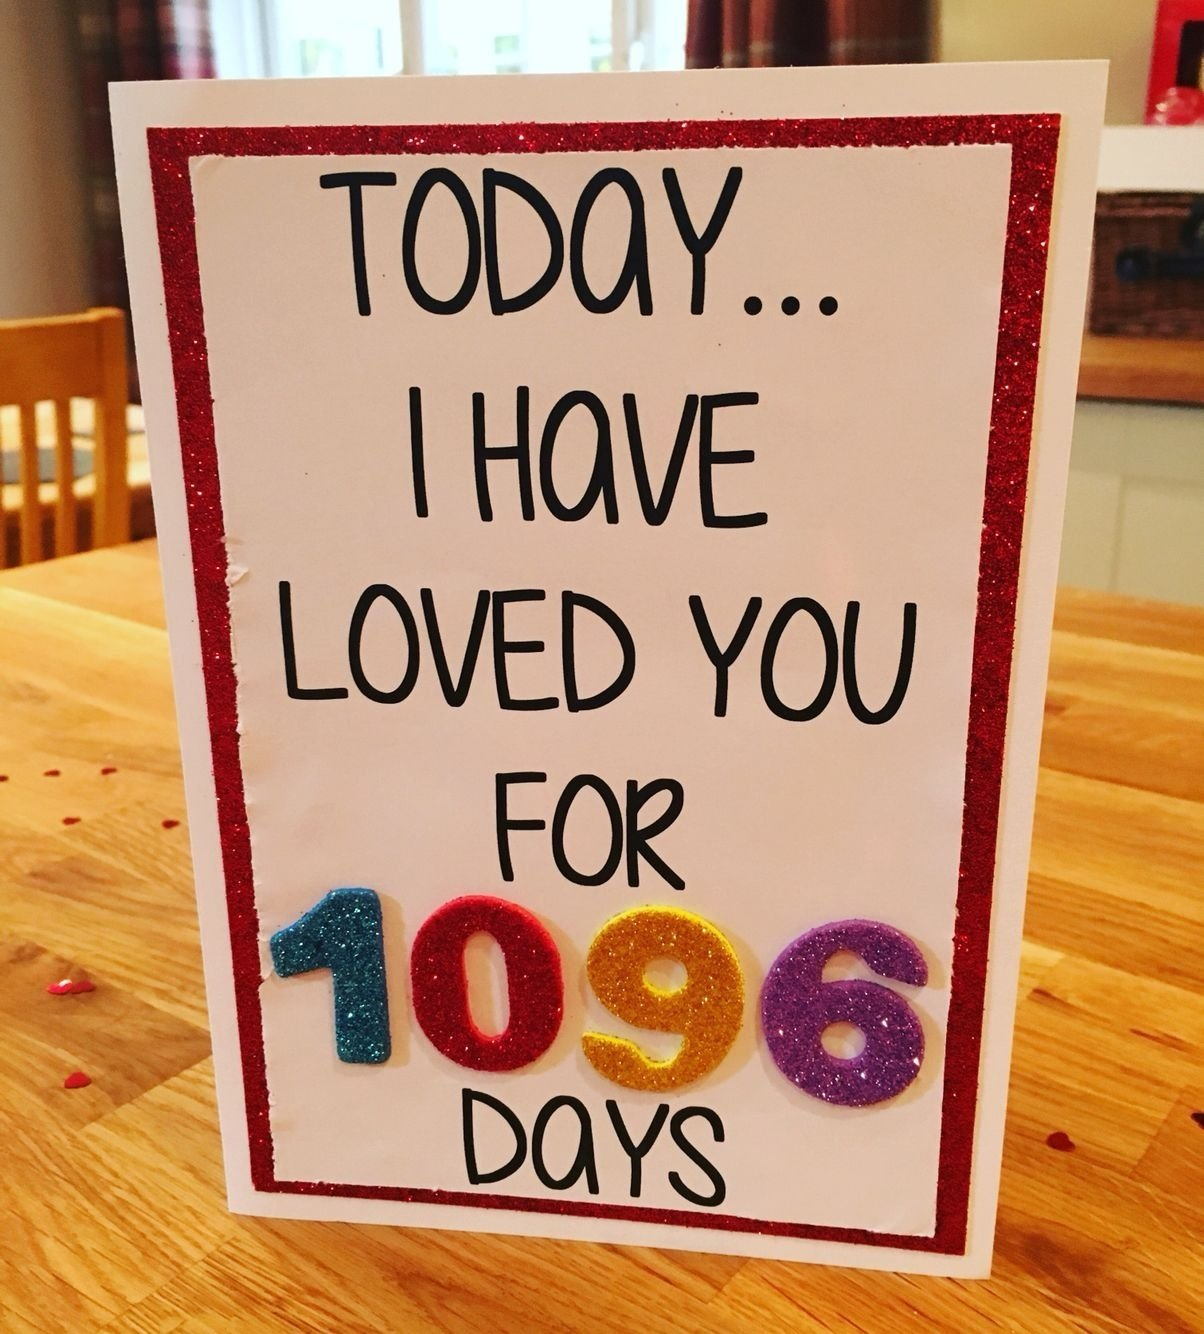 10 Gorgeous 3 Year Anniversary Gift Ideas For Him 3 year anniversary card today i have loved you for 1096 days x 4 2020